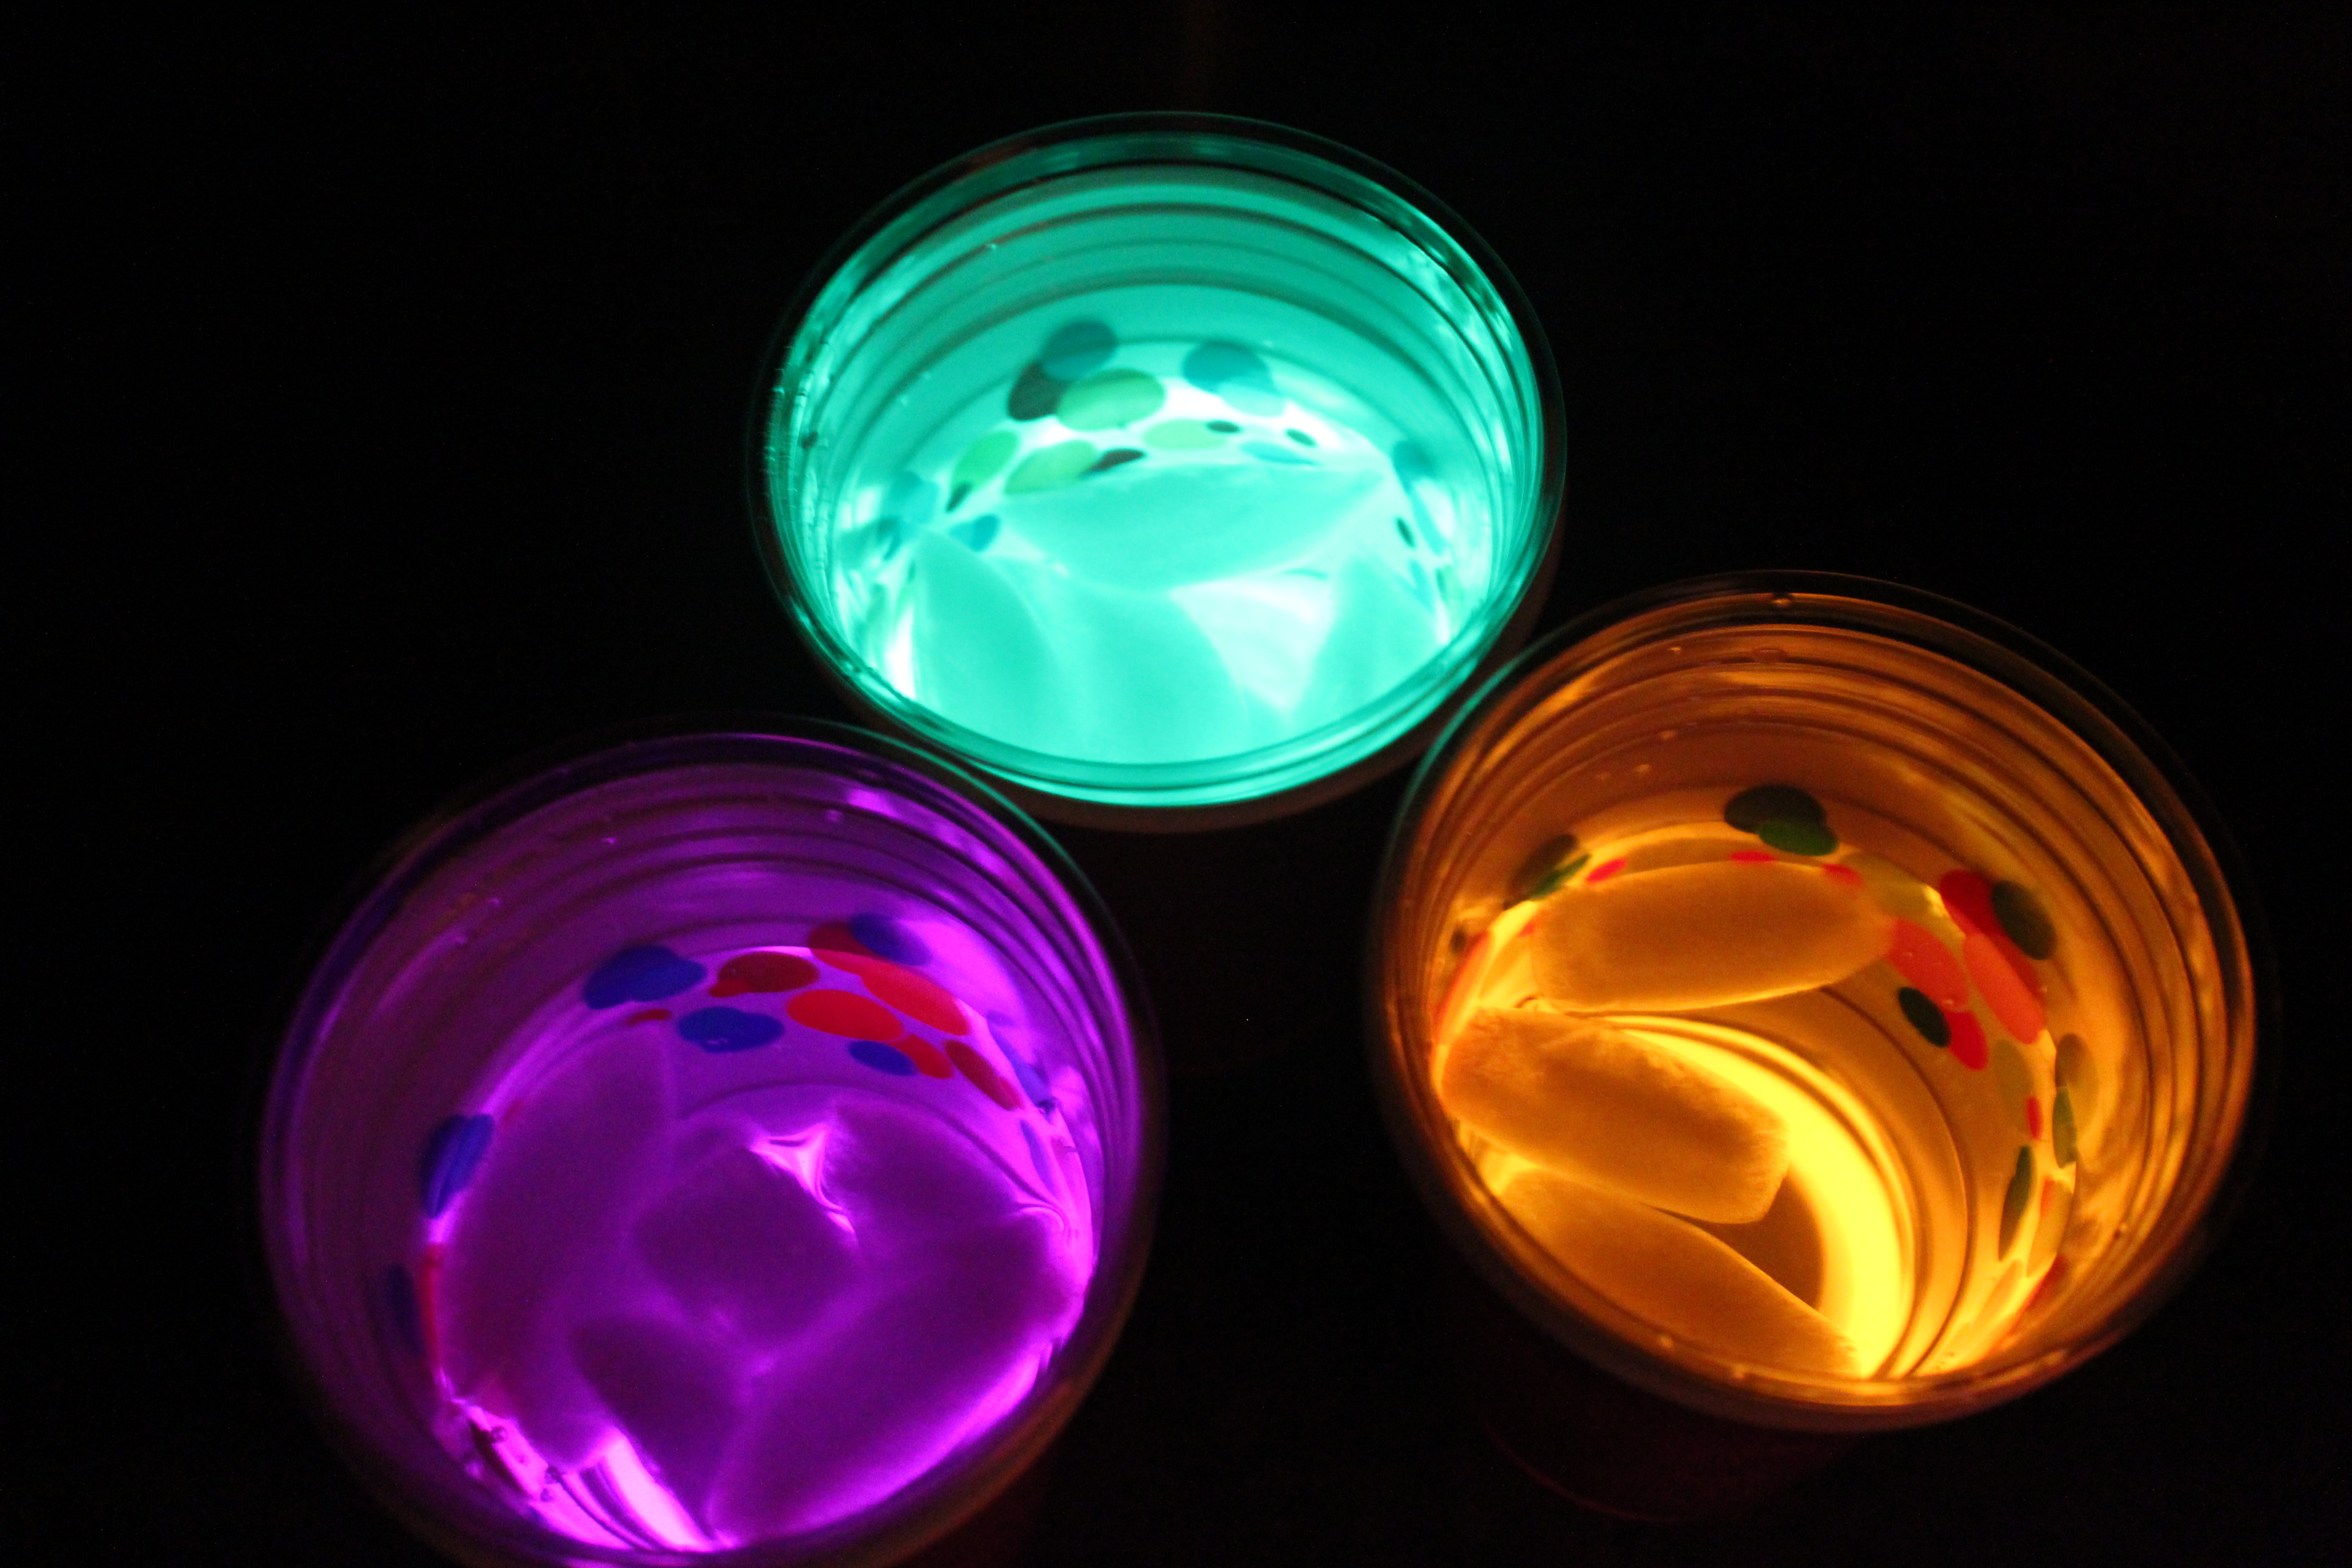 frugal sleepover fun: glow-in-the-dark cups - mommysavers